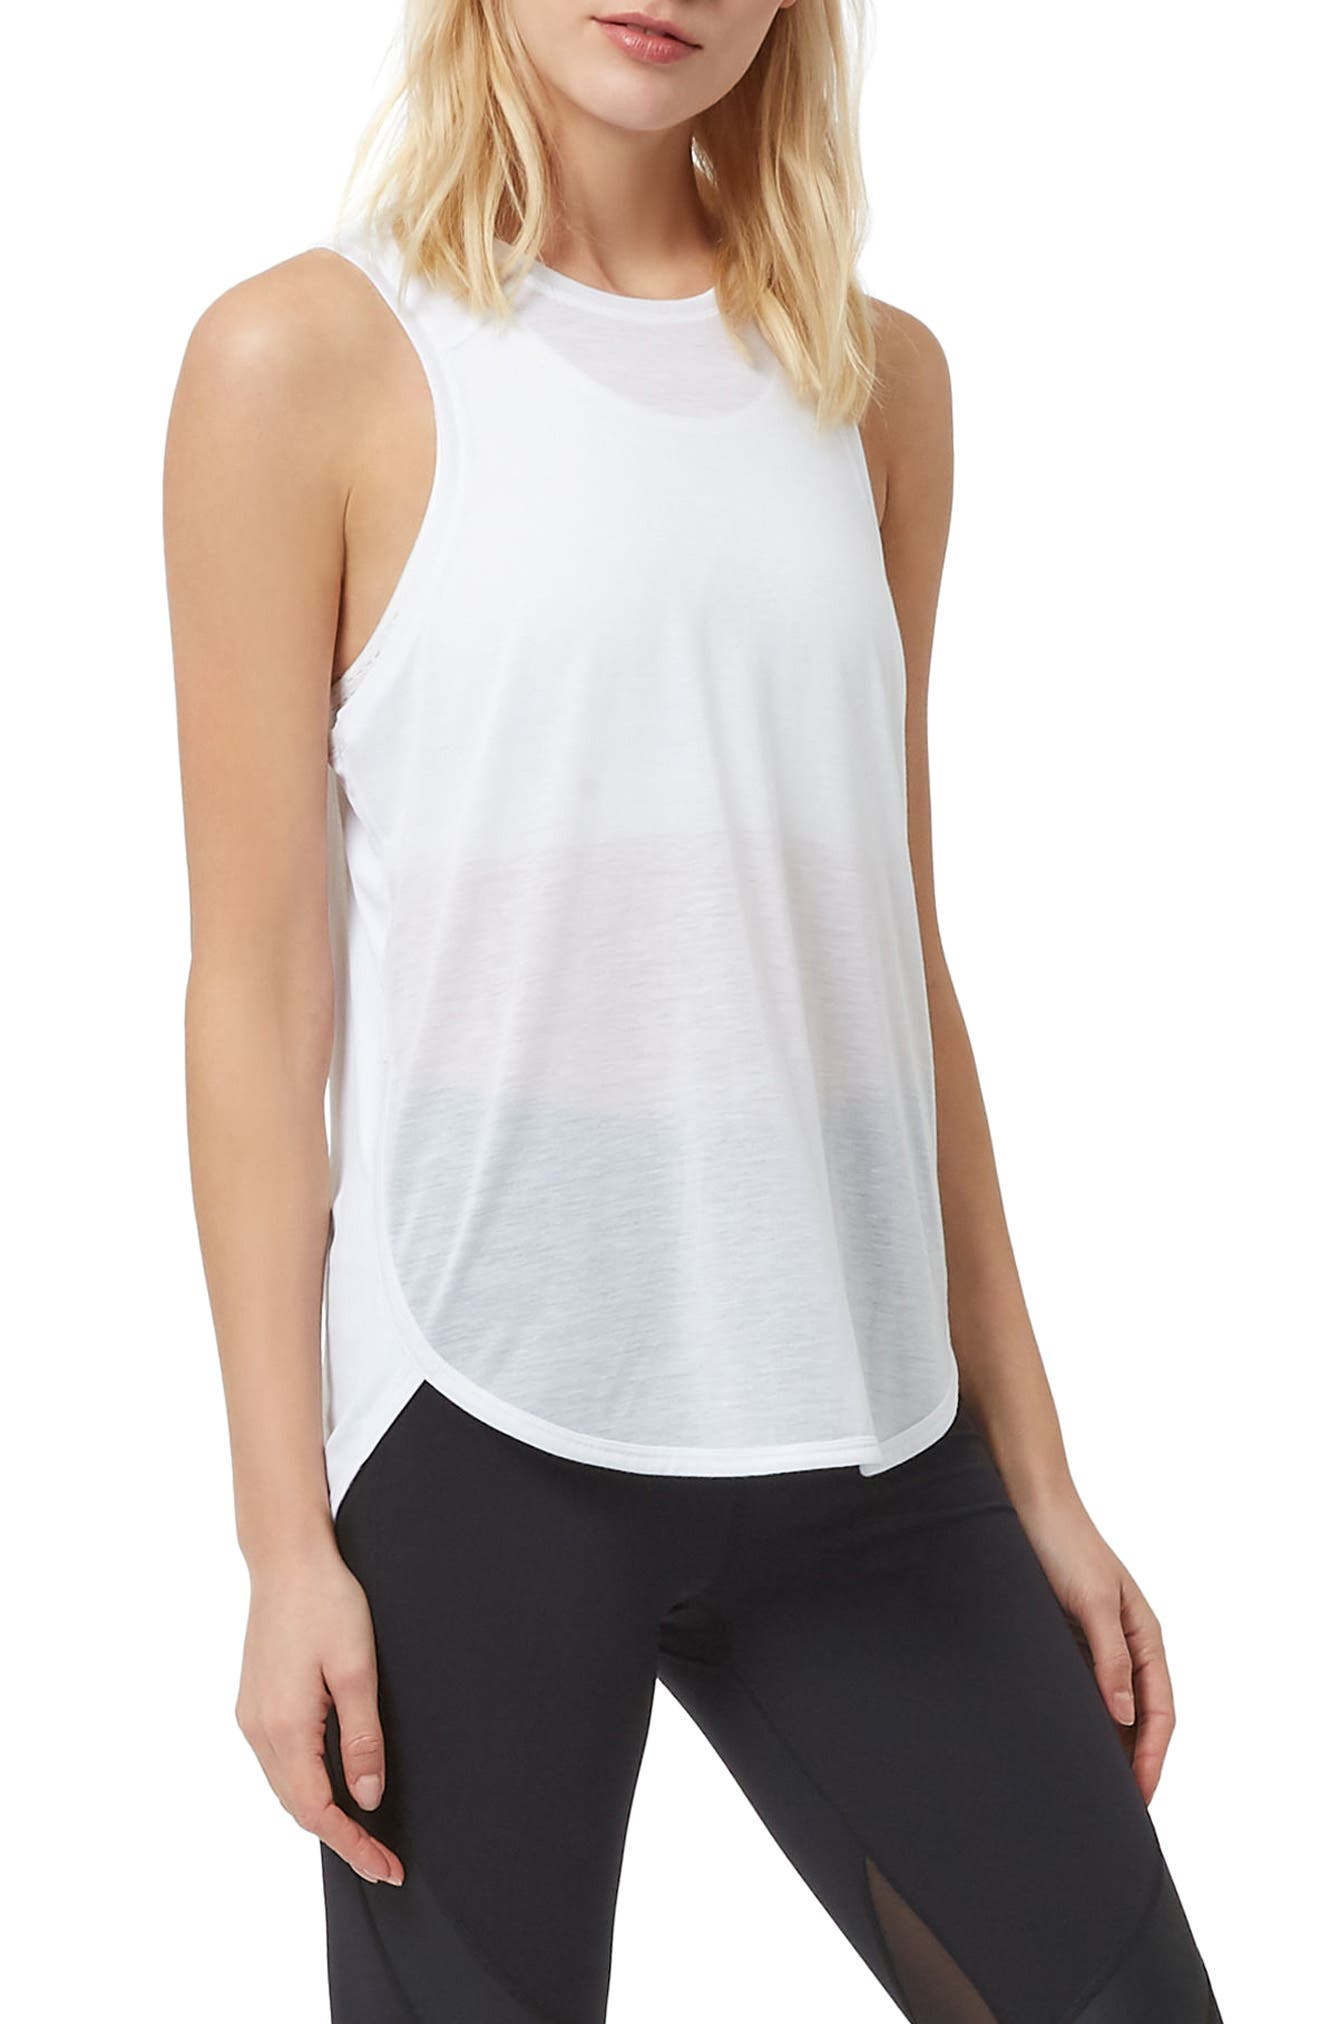 Pacesetter Run Tank,                         Main,                         color, WHITE